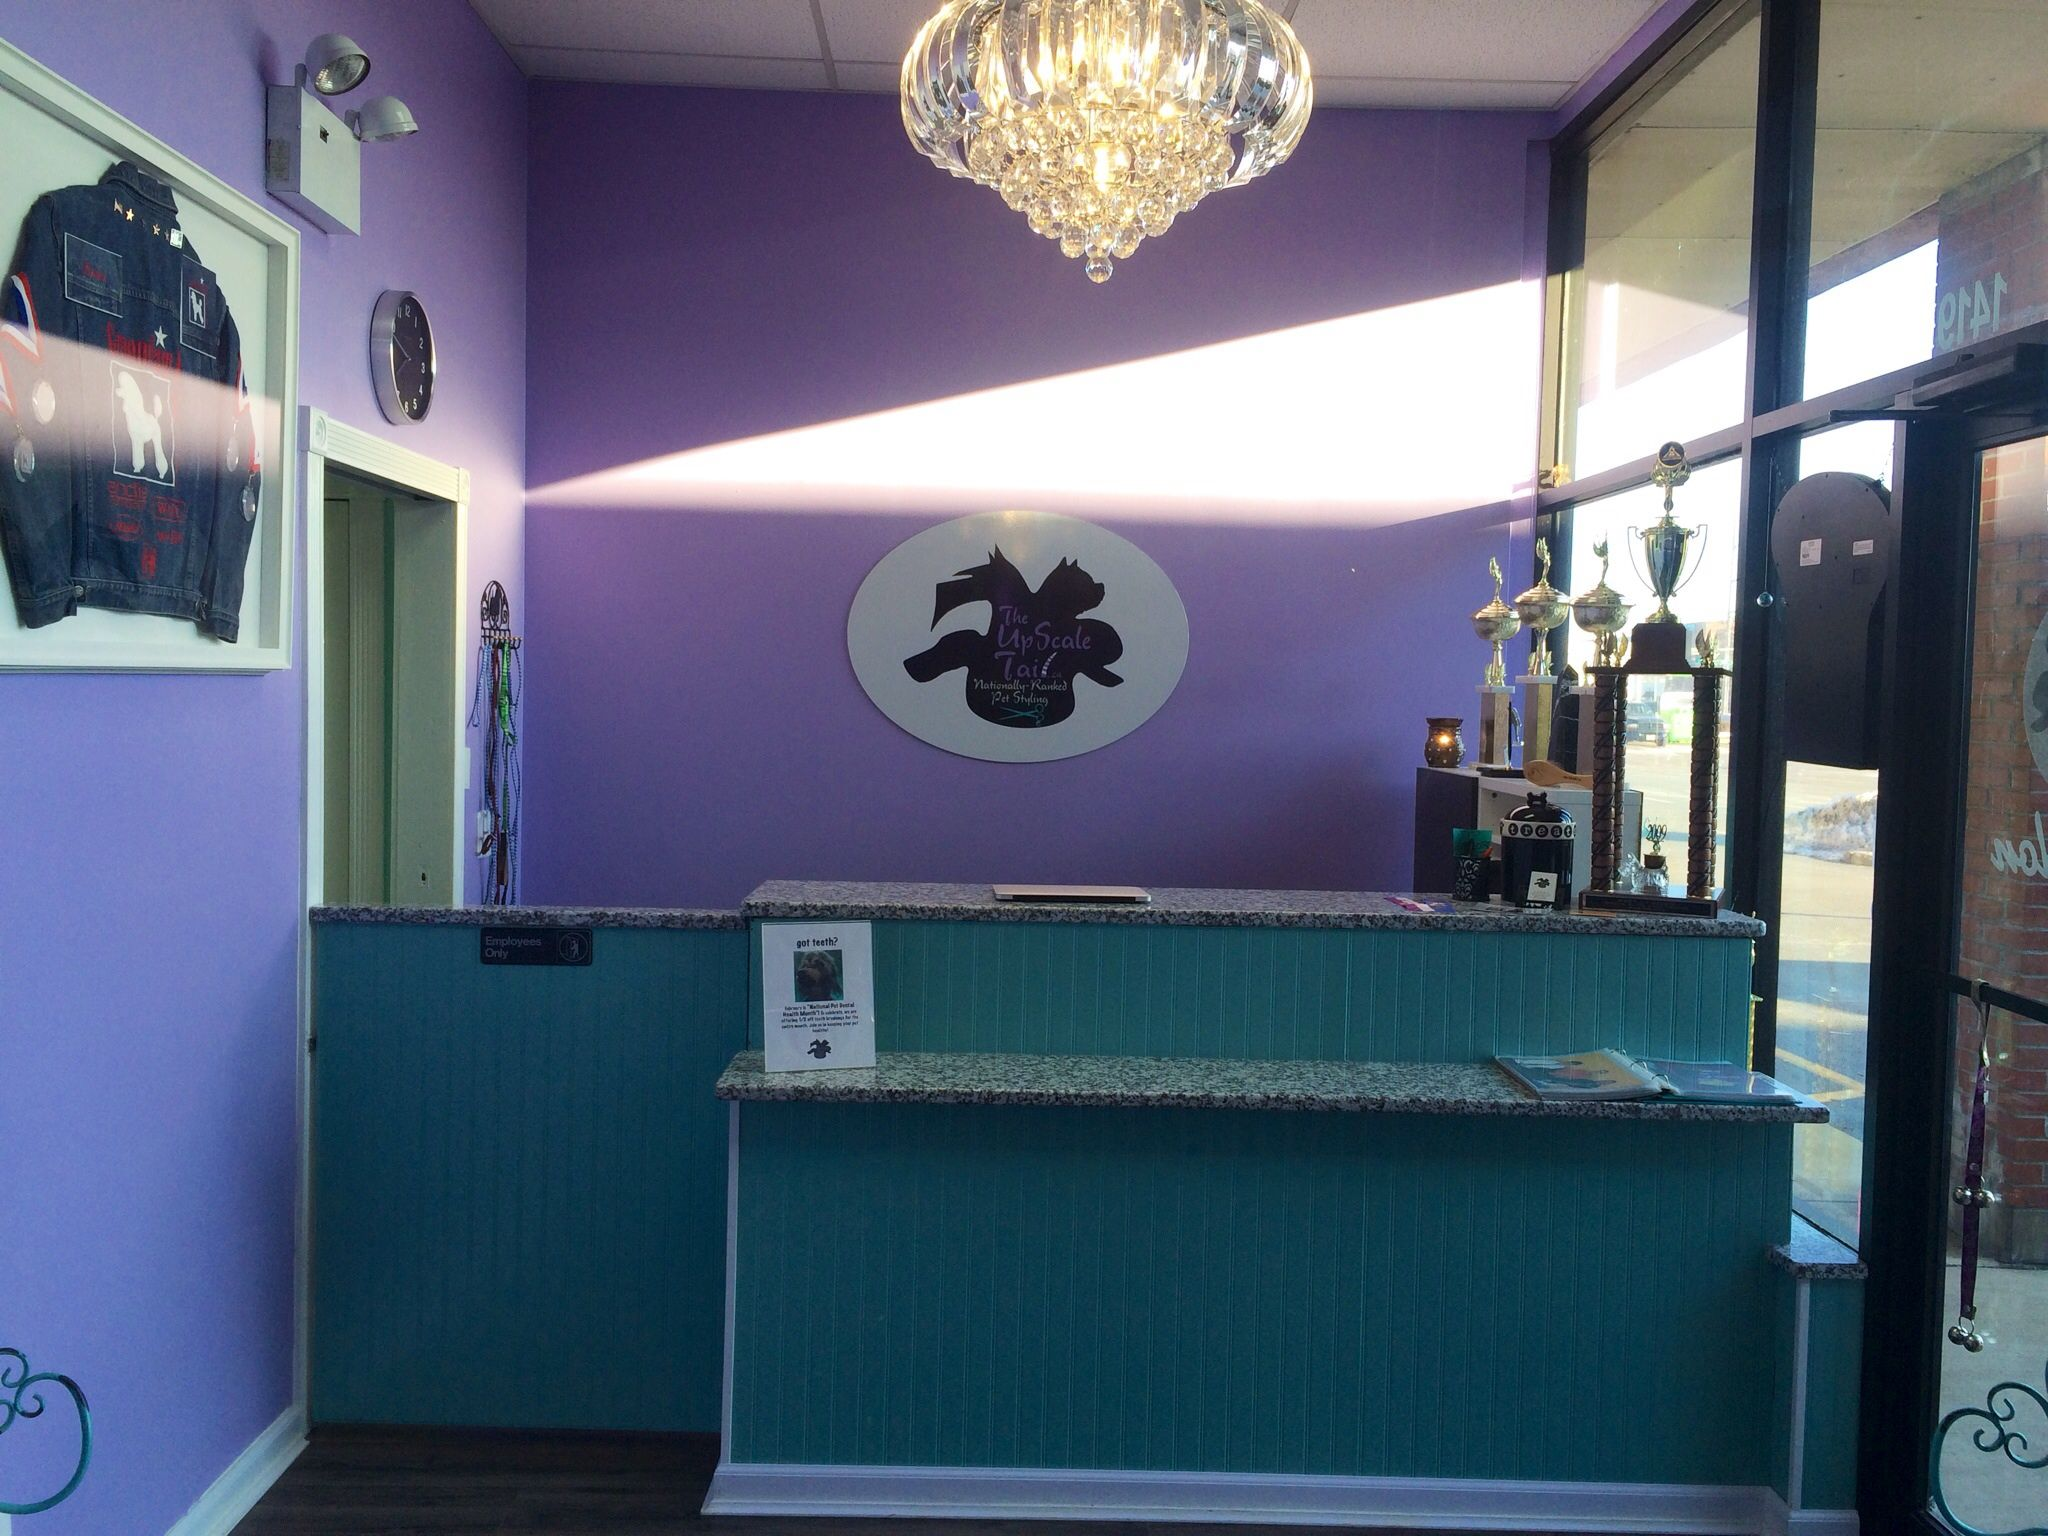 The upscale tail pet grooming salon naperville il www the upscale tail pet grooming salon naperville il theupscaletail 630 solutioingenieria Choice Image